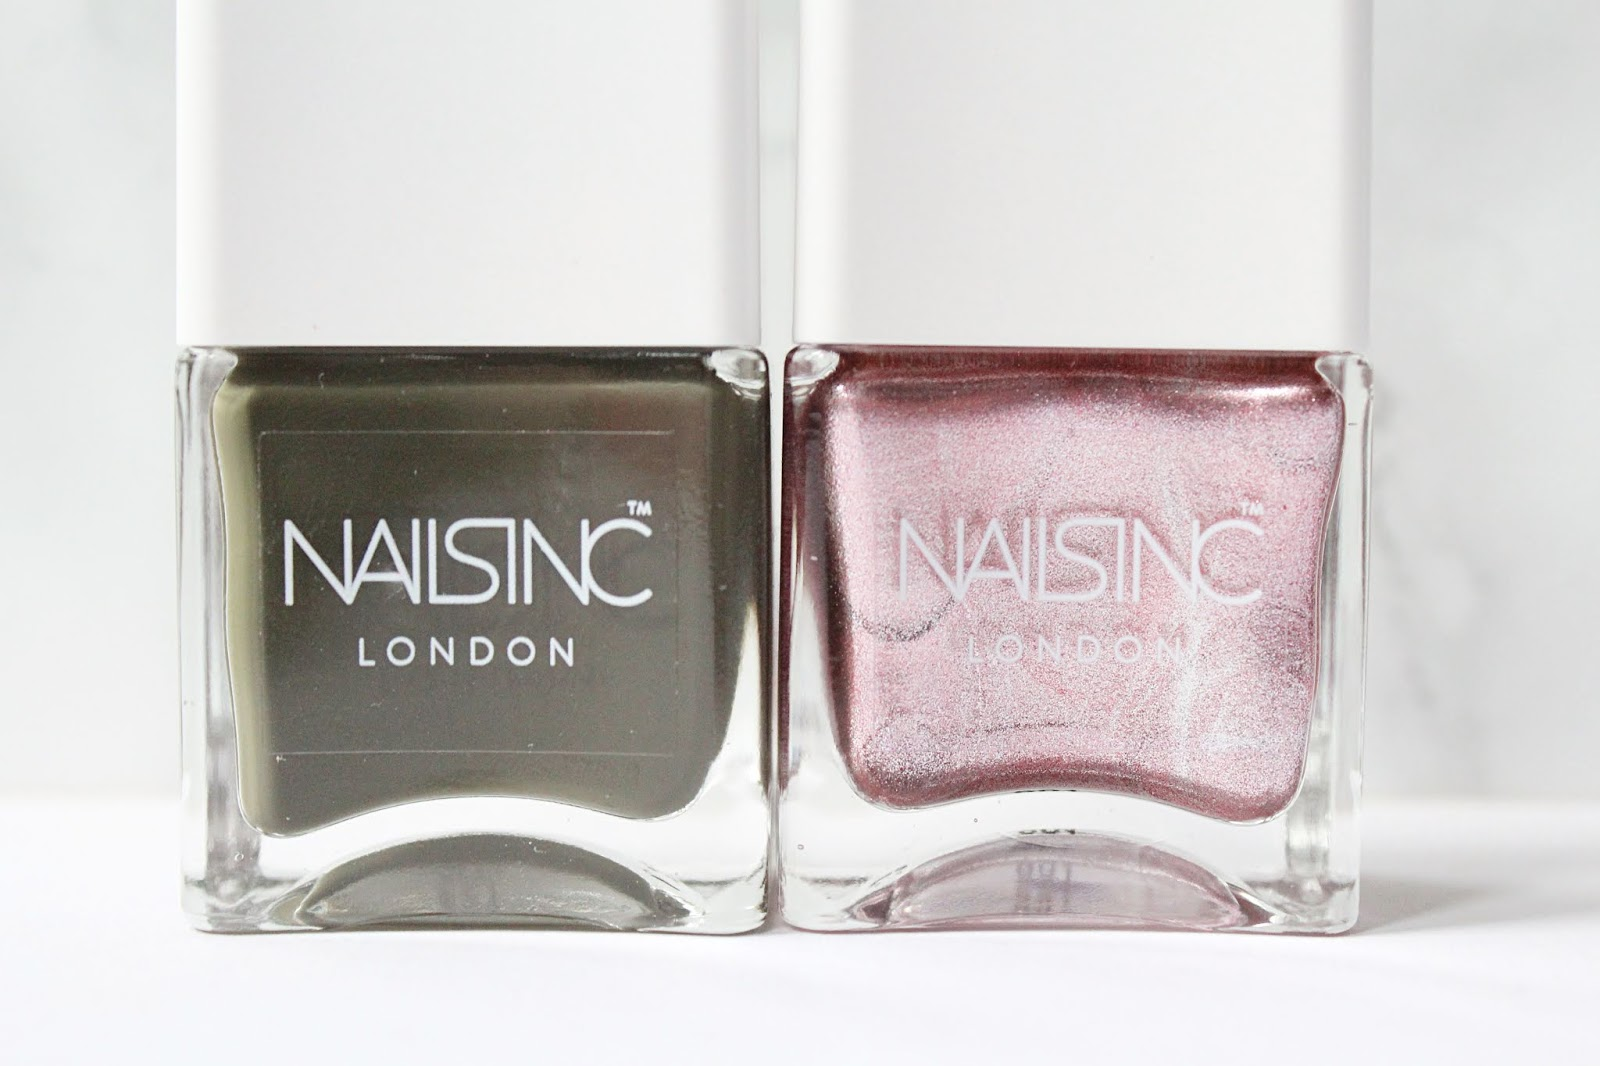 Nails Inc Girl King Nail Polish Duo Review (+ Swatches)